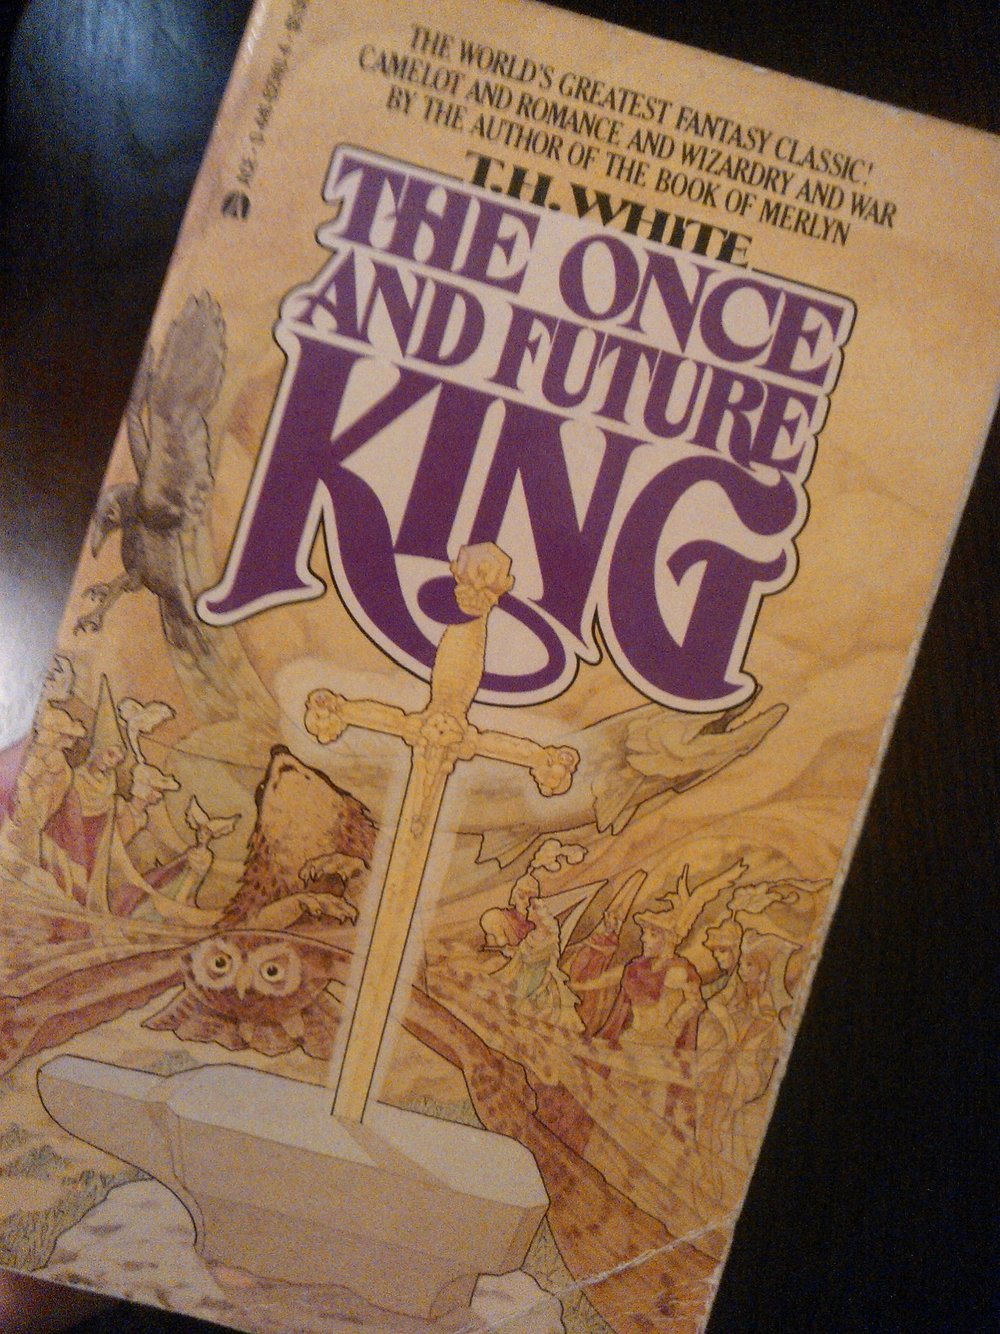 My original, 7th grade personal copy of T. H. White's The Once and Future King.